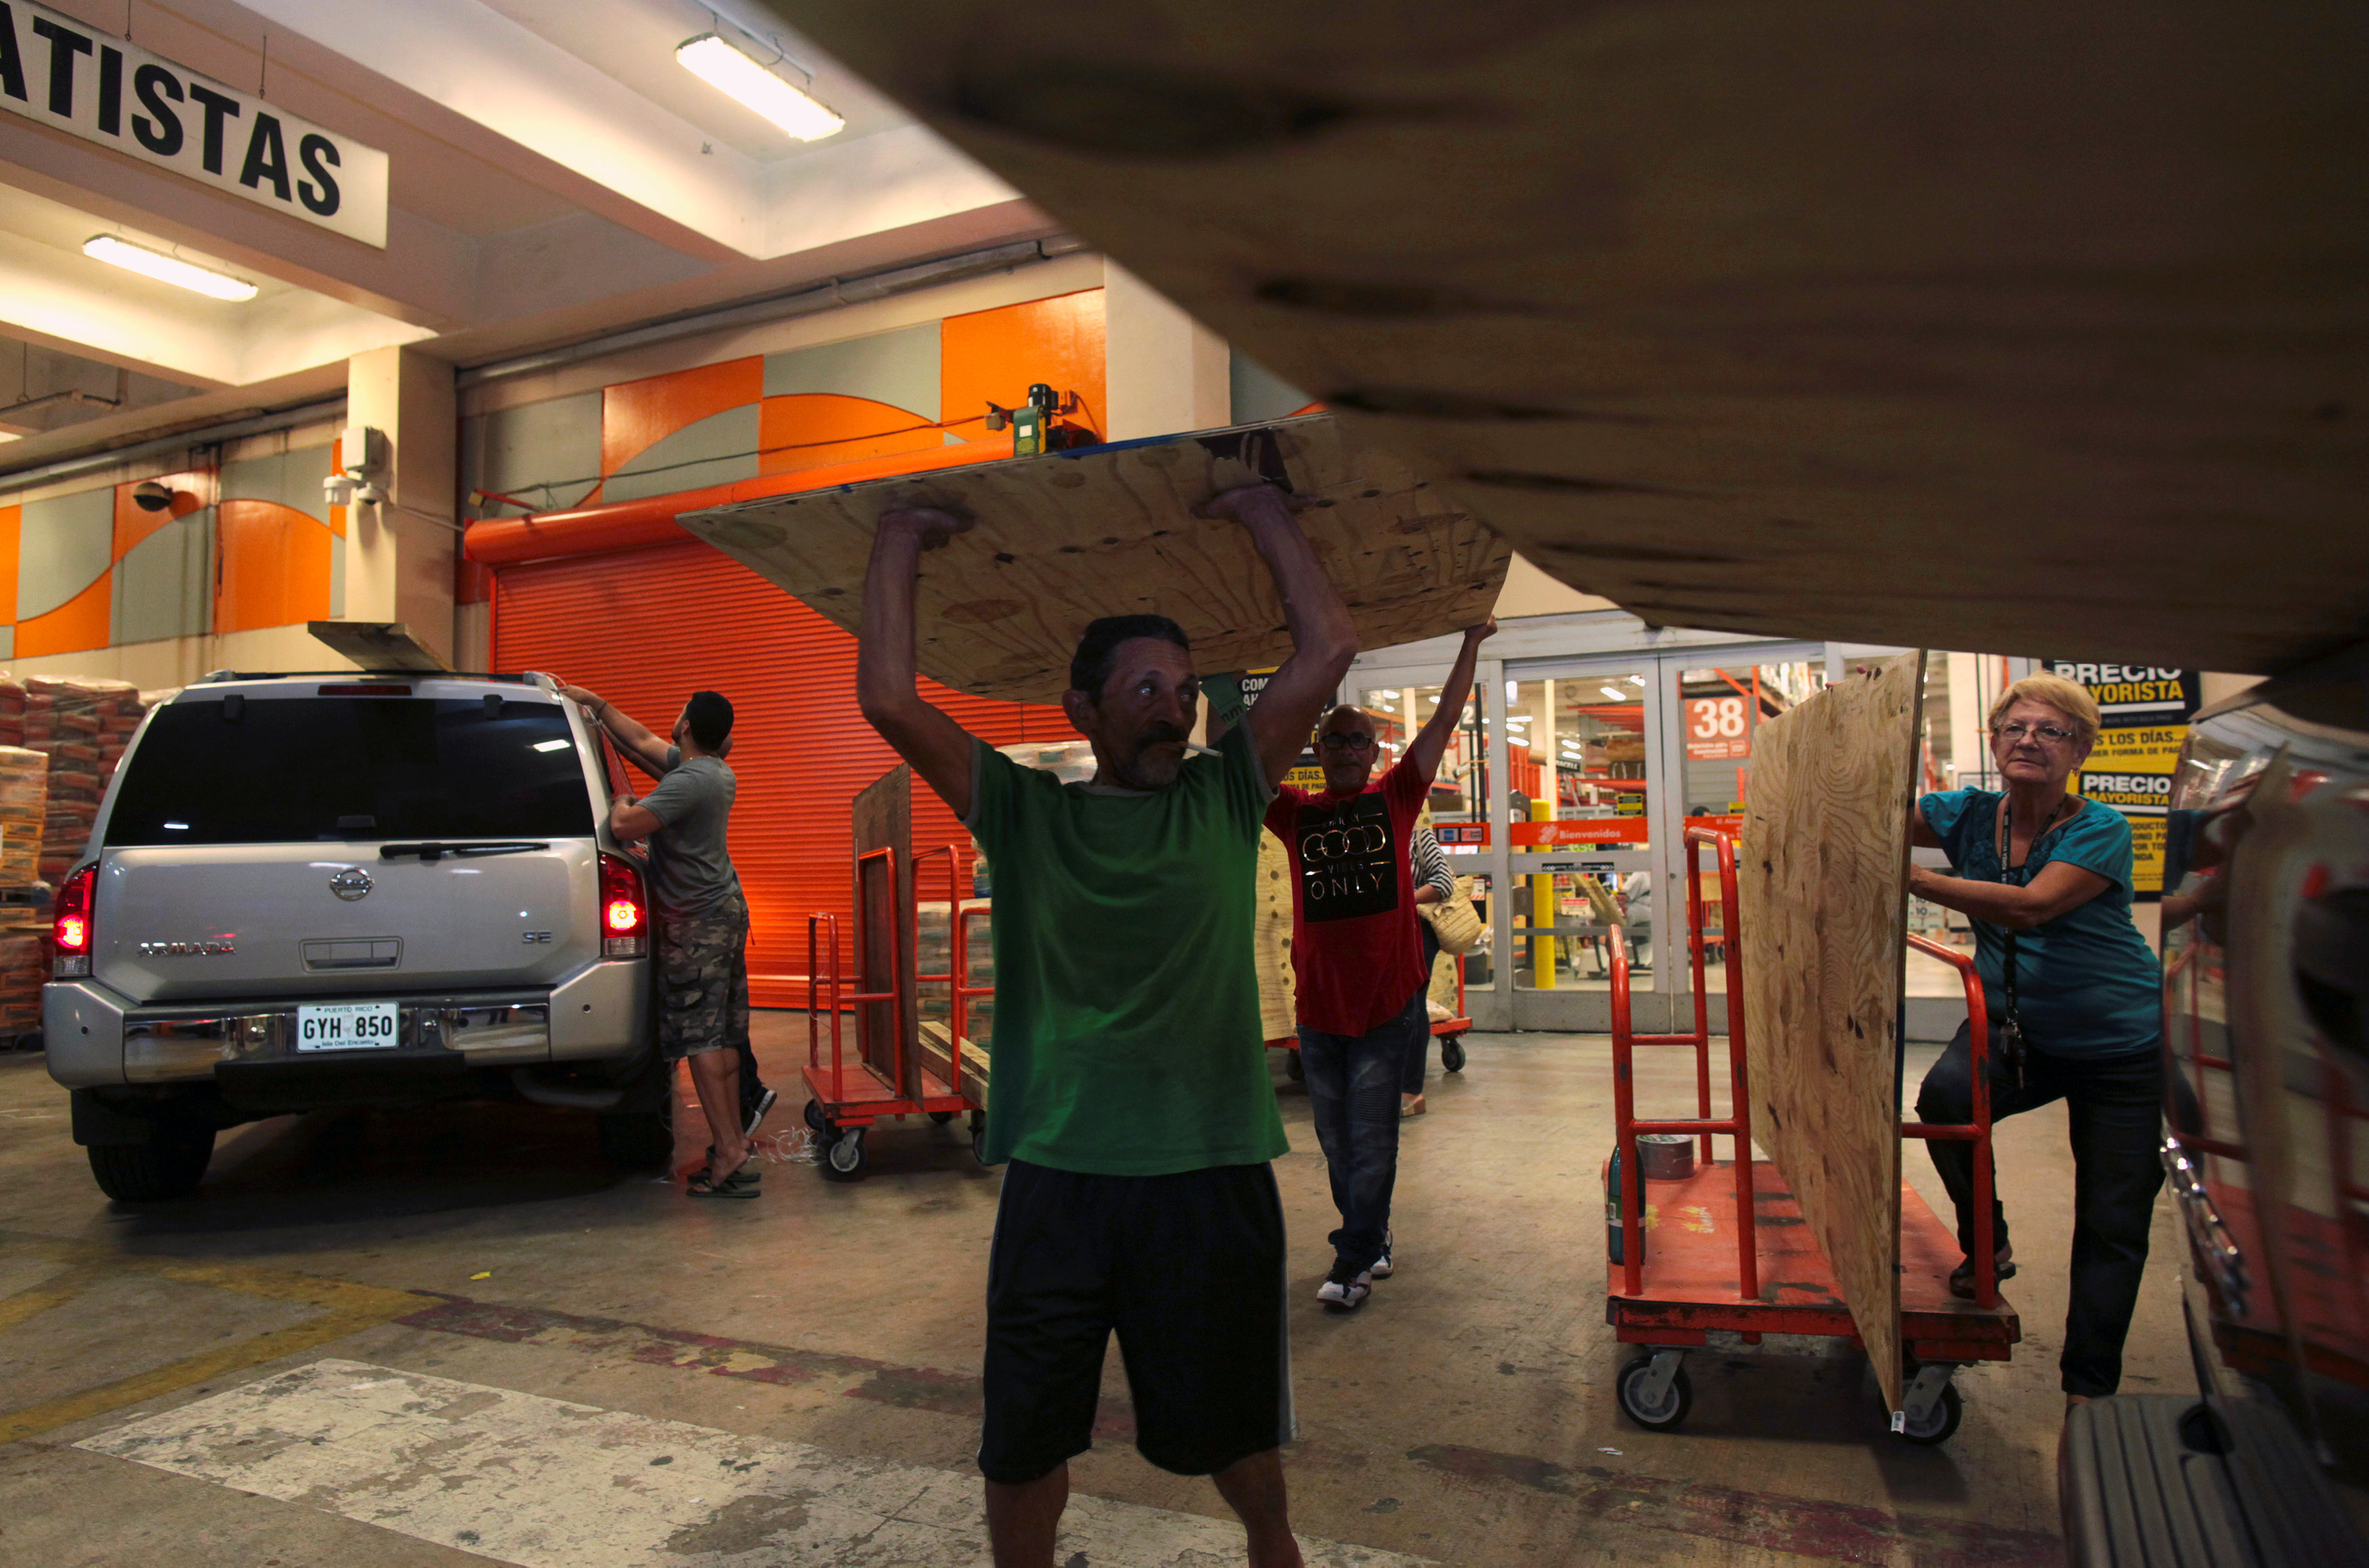 People buy materials at a hardware store after Puerto Rico Governor Ricardo Rossello declared a state of emergency in preparation for Hurricane Irma, in Bayamon, Puerto Rico on Sept. 4, 2017. (REUTERS/Alvin Baez)